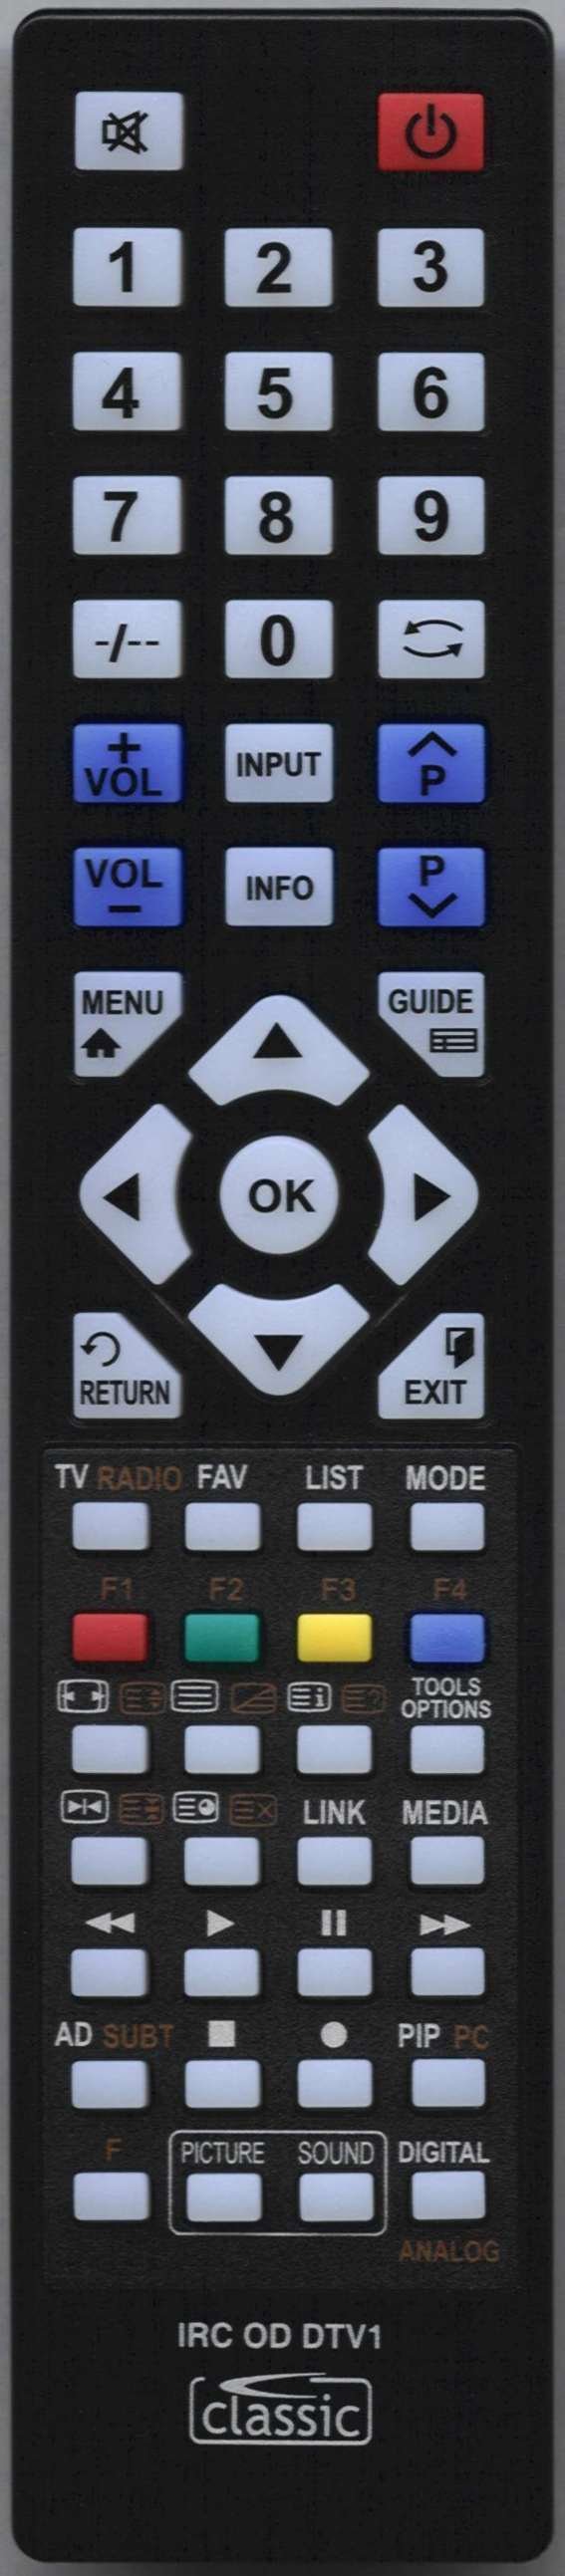 BLAUPUNKT 50/149Z-GB-5B2-FGKUPOW-UK Remote Control Alternative